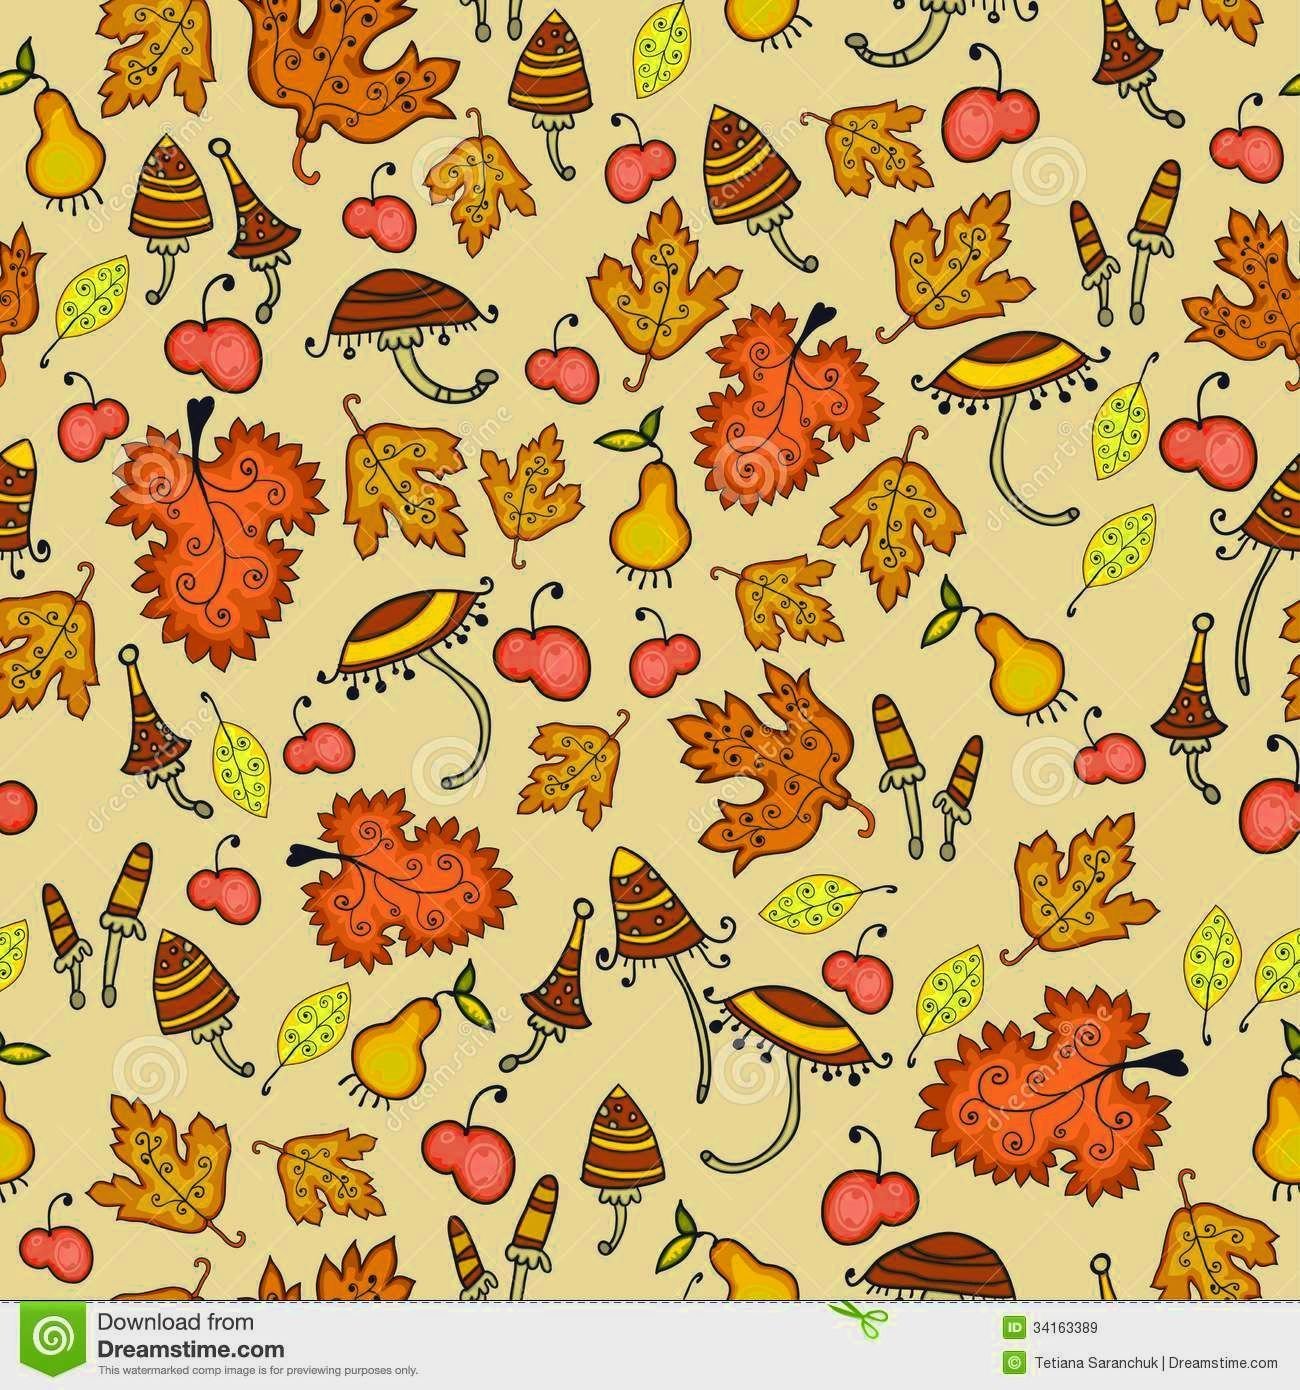 Cute Fall Backgrounds Season Wallpaper Pinterest Hd